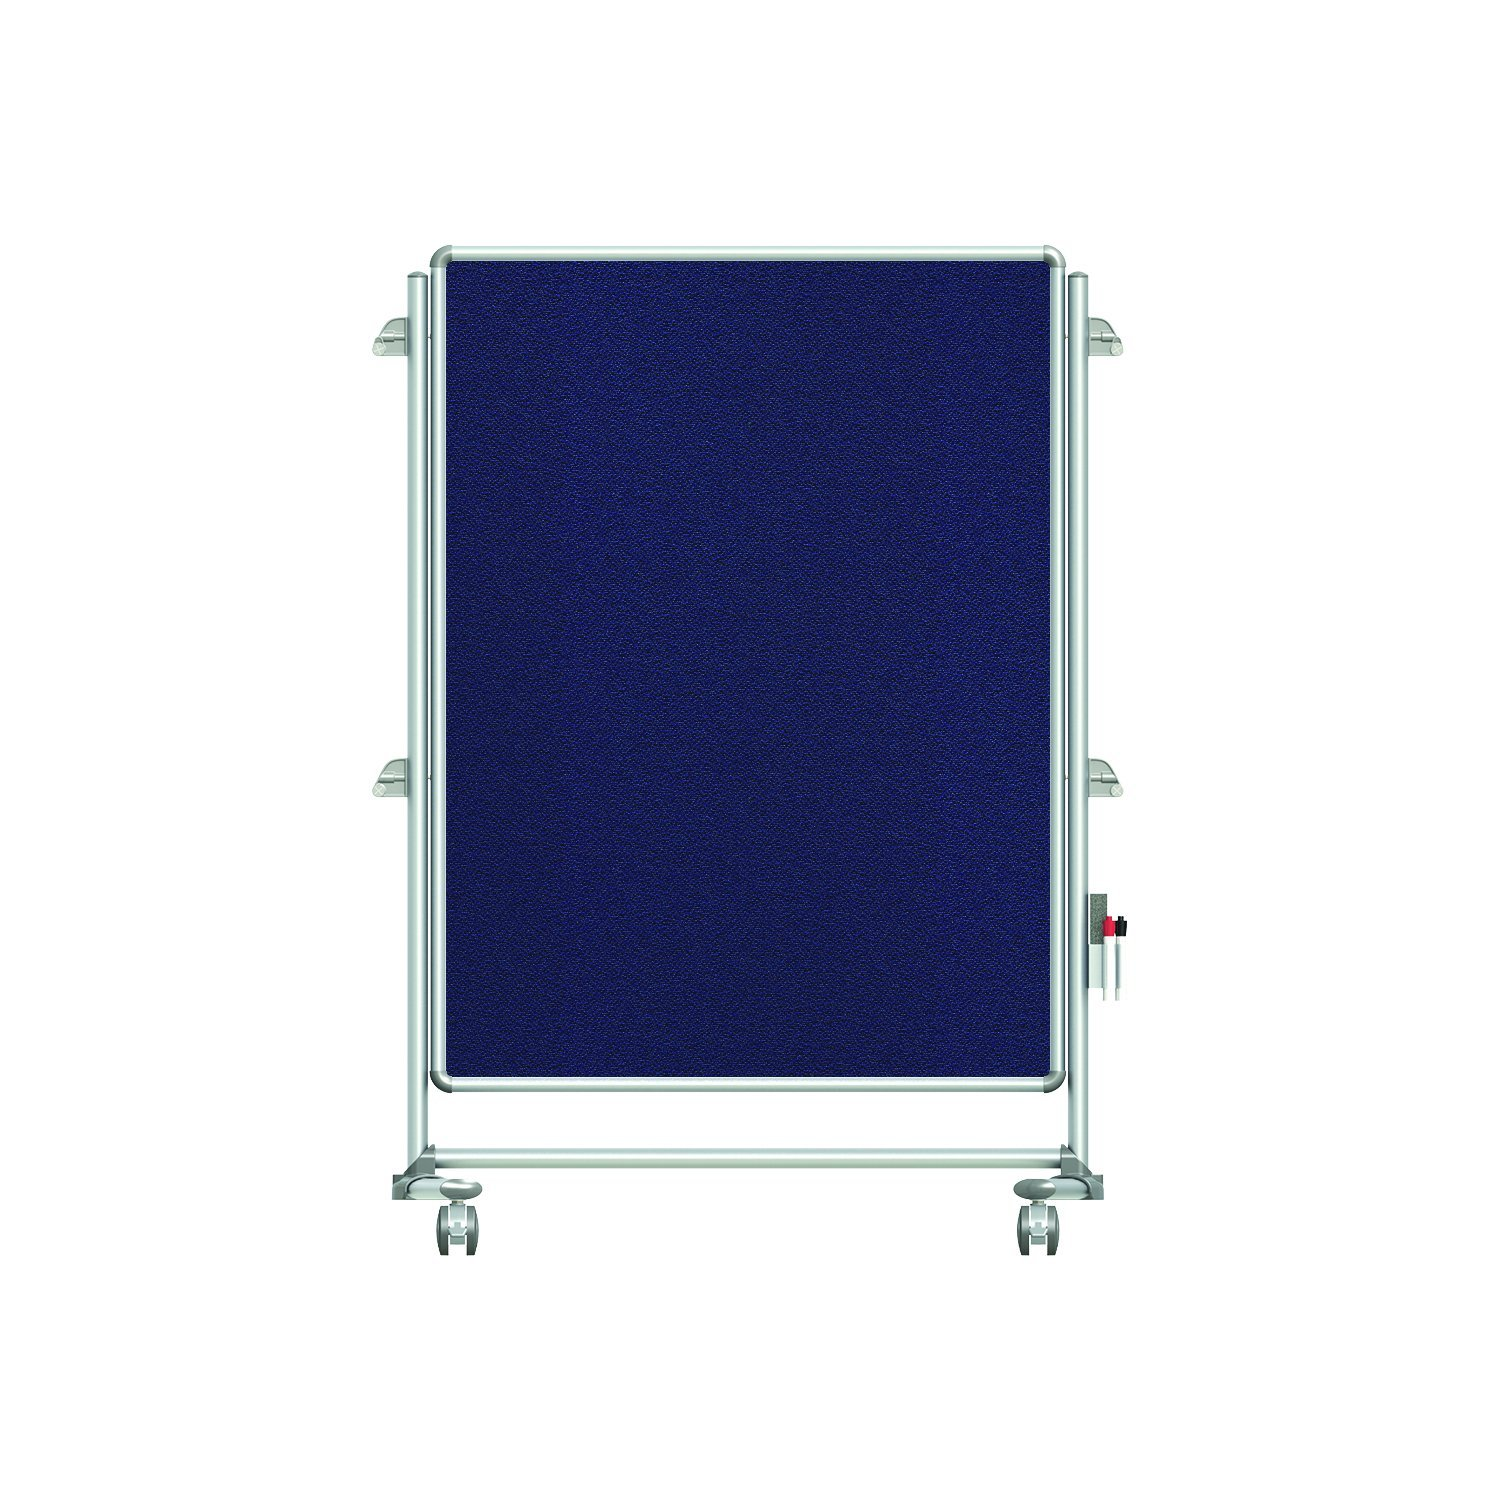 "Ghent 57-3/8"" x 40-3/8"" Nexus Jr. Partition Mobile Fabric Bulletin Board, Double-Sided, Blue (NEX223FFP-93)"